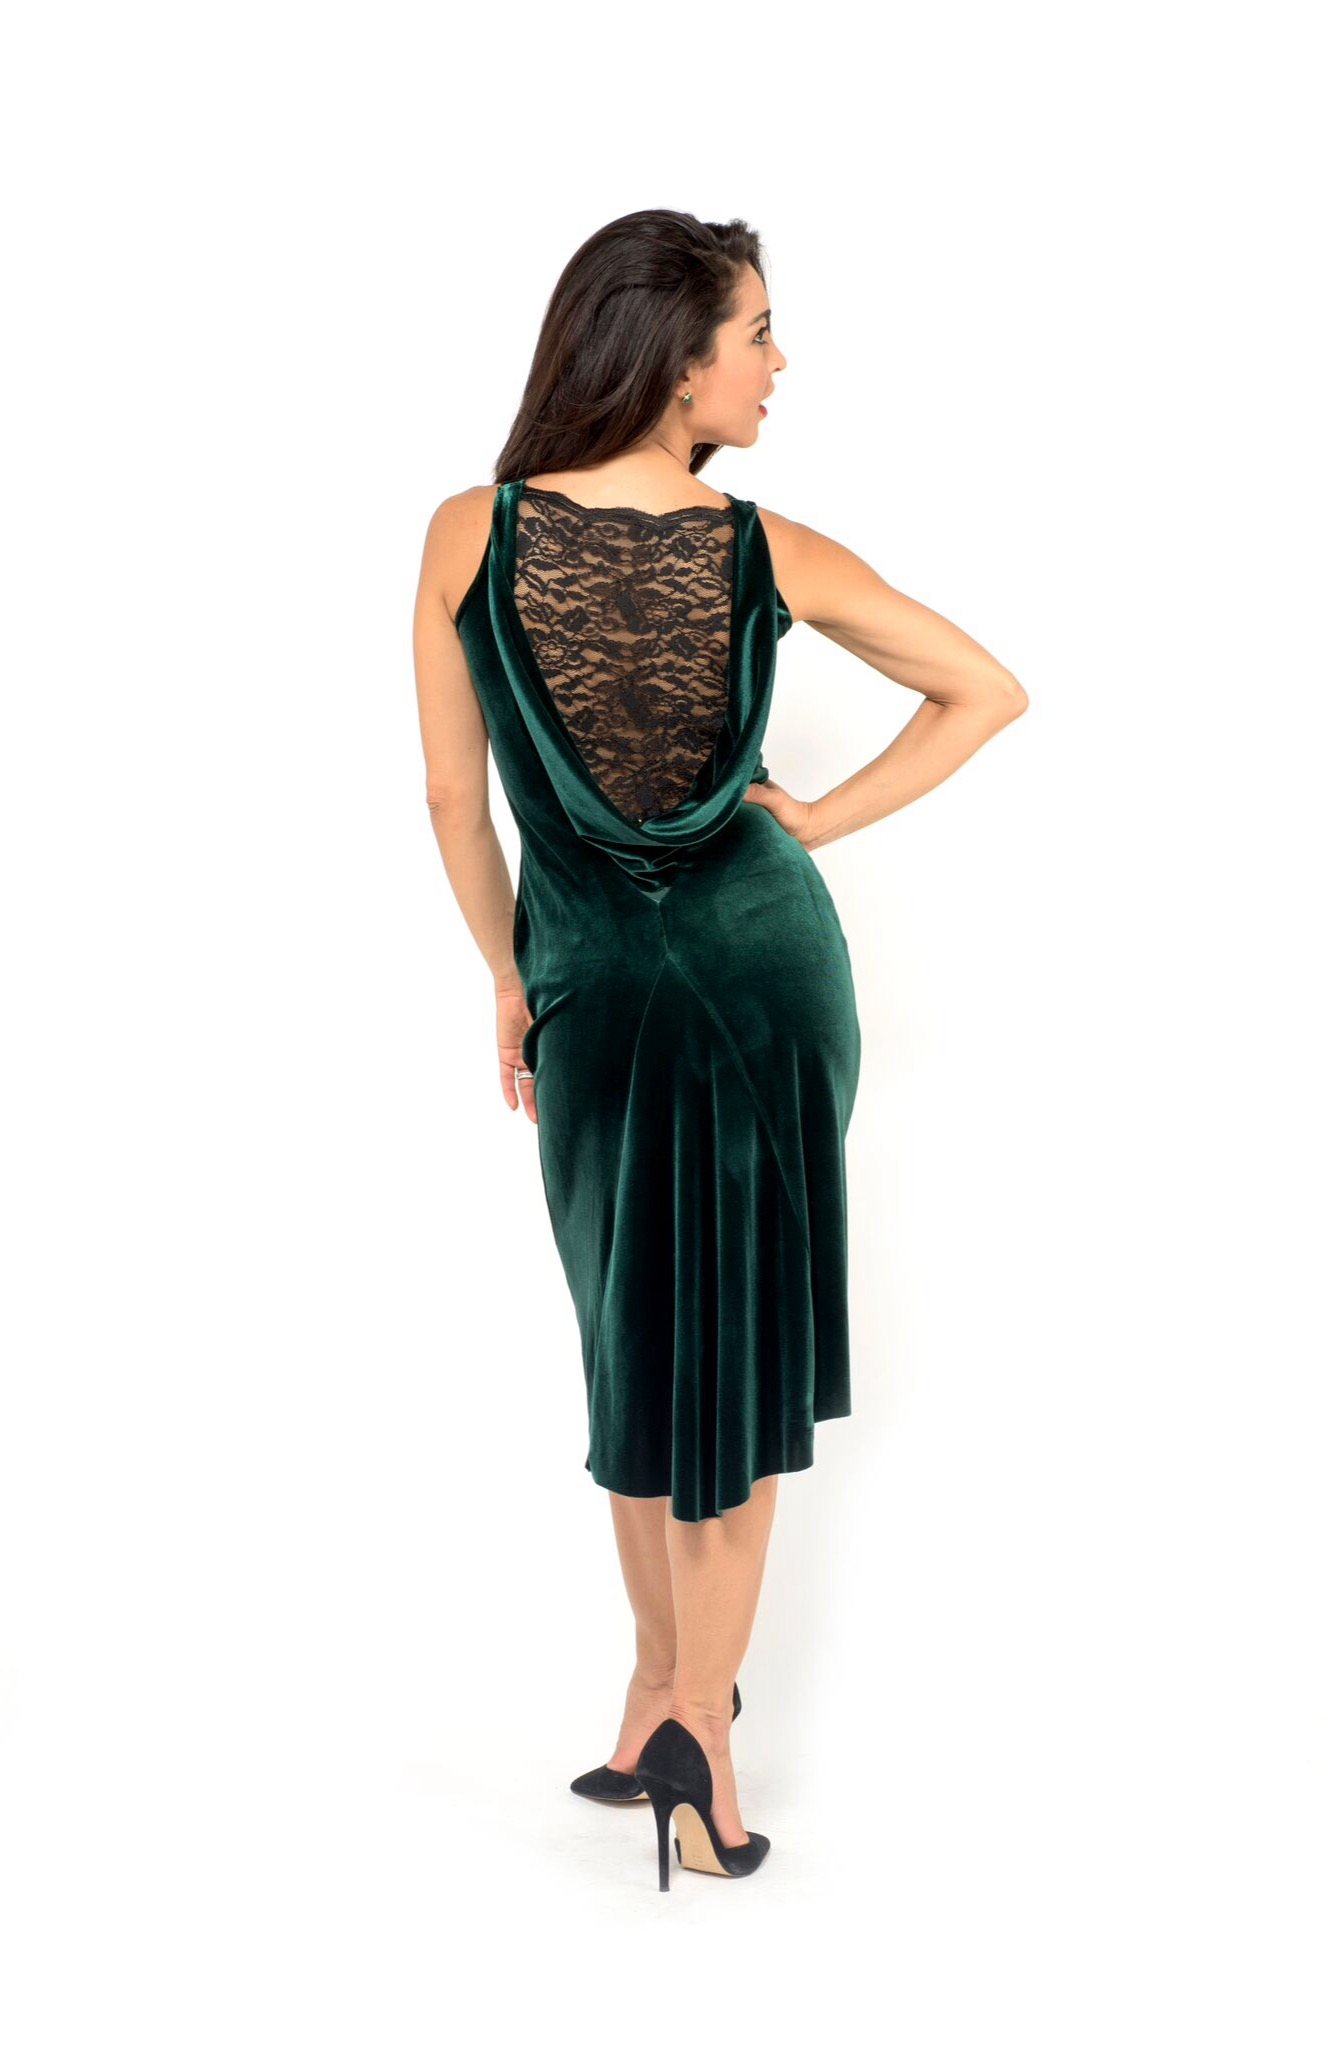 GREEN VELVET Argentine TANGO DRESS